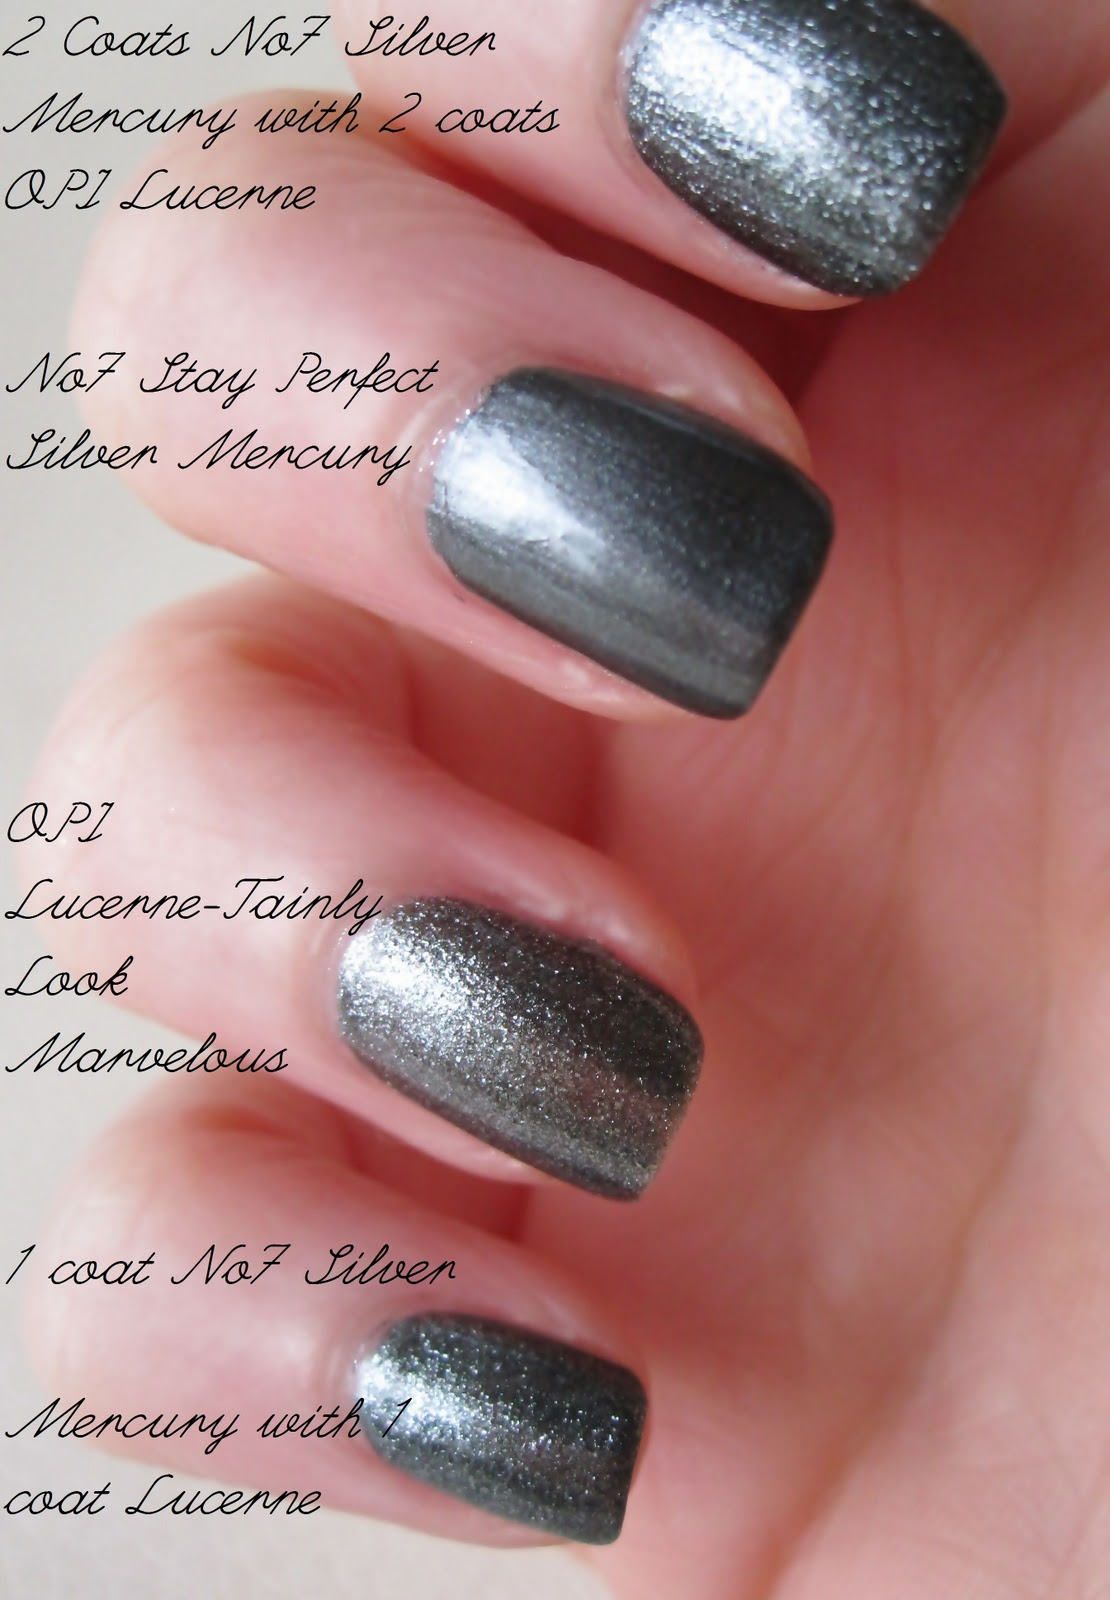 Notd No7 Opi Gunmetal Shades Makeup Savvy And